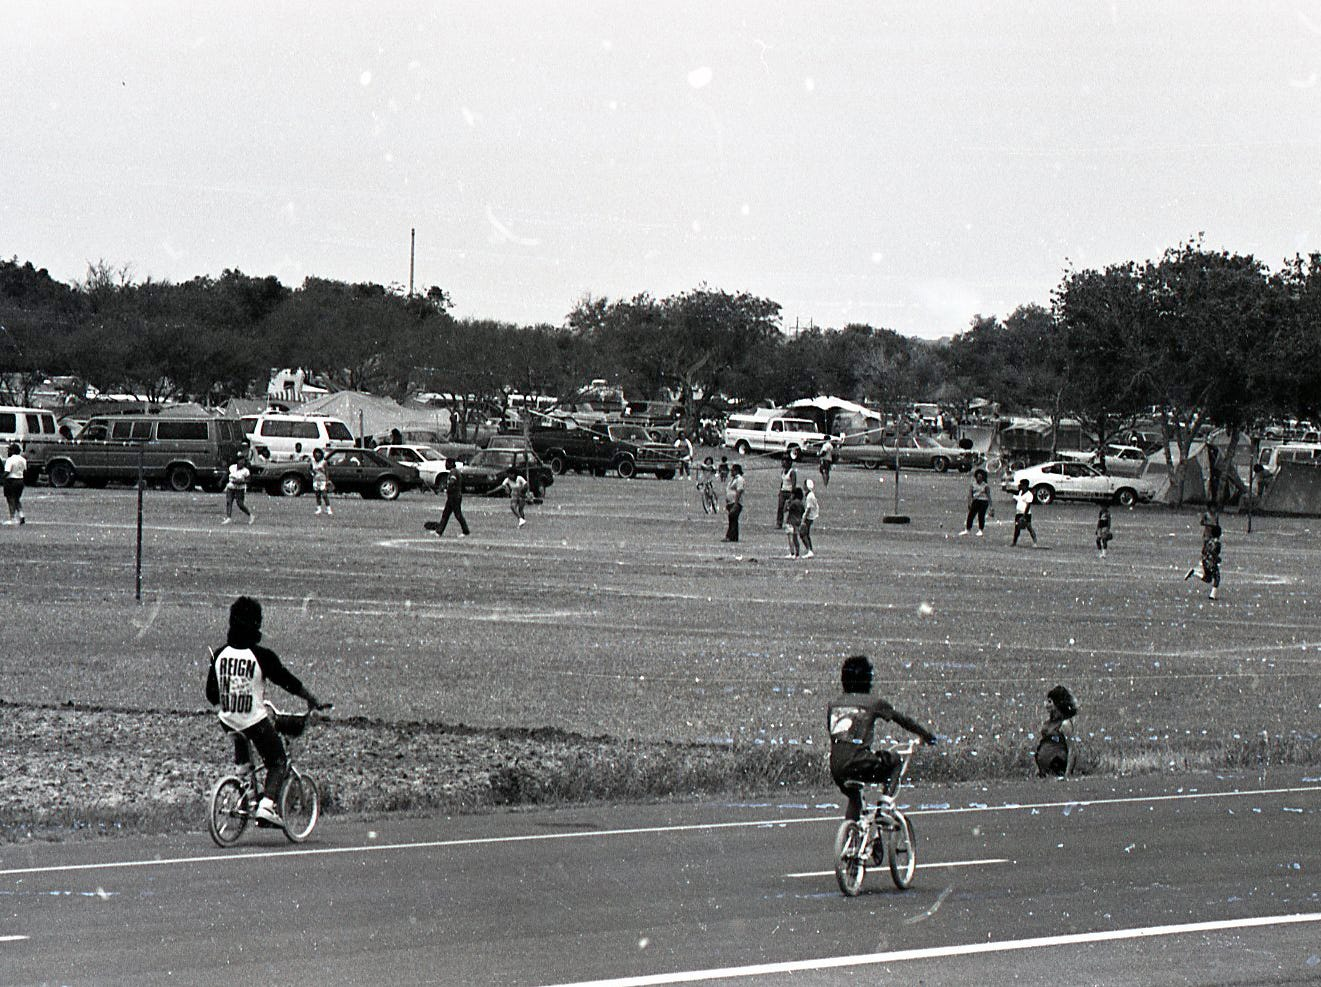 Kids on bikes ride past the recreation fields at Nueces River Park in Corpus Christi, which was packed with families enjoying Easter Sunday on April 19, 1987.